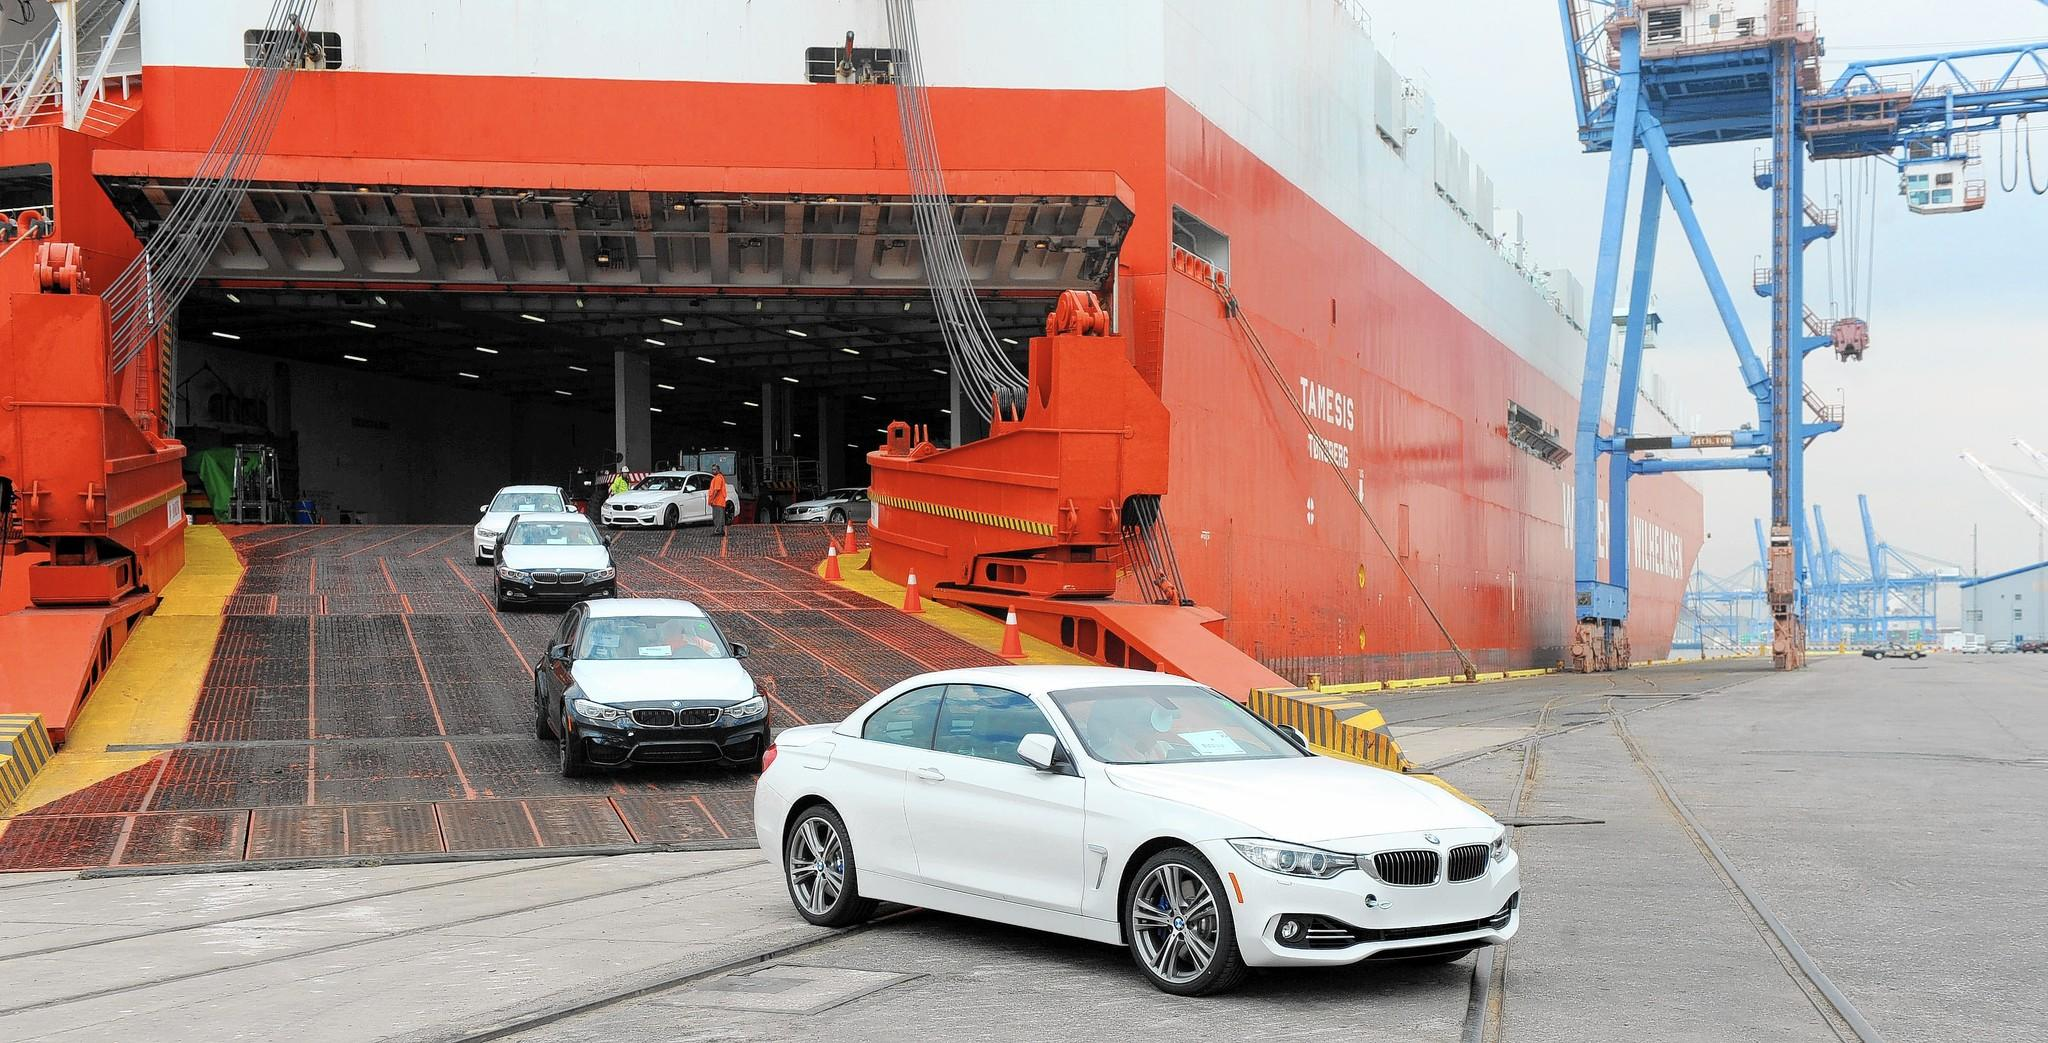 BMWs are driven off a Wallenius Wilhelmsen ship at the Port of Baltimore. BMW officially opens a new Vehicle Distribution Center at the port.